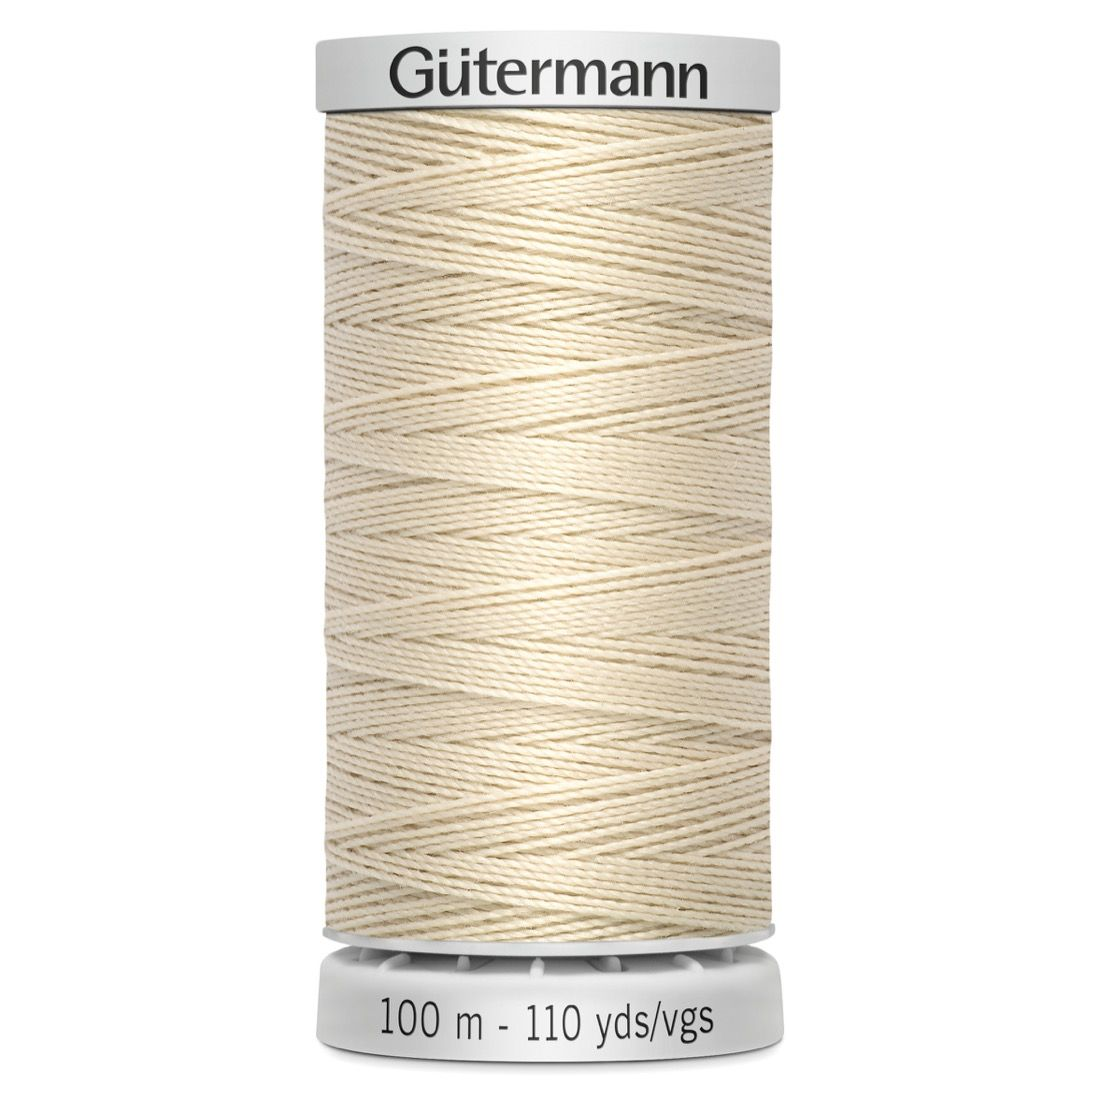 Gutermann Extra Strong Upholstery Thread - 100m - 169